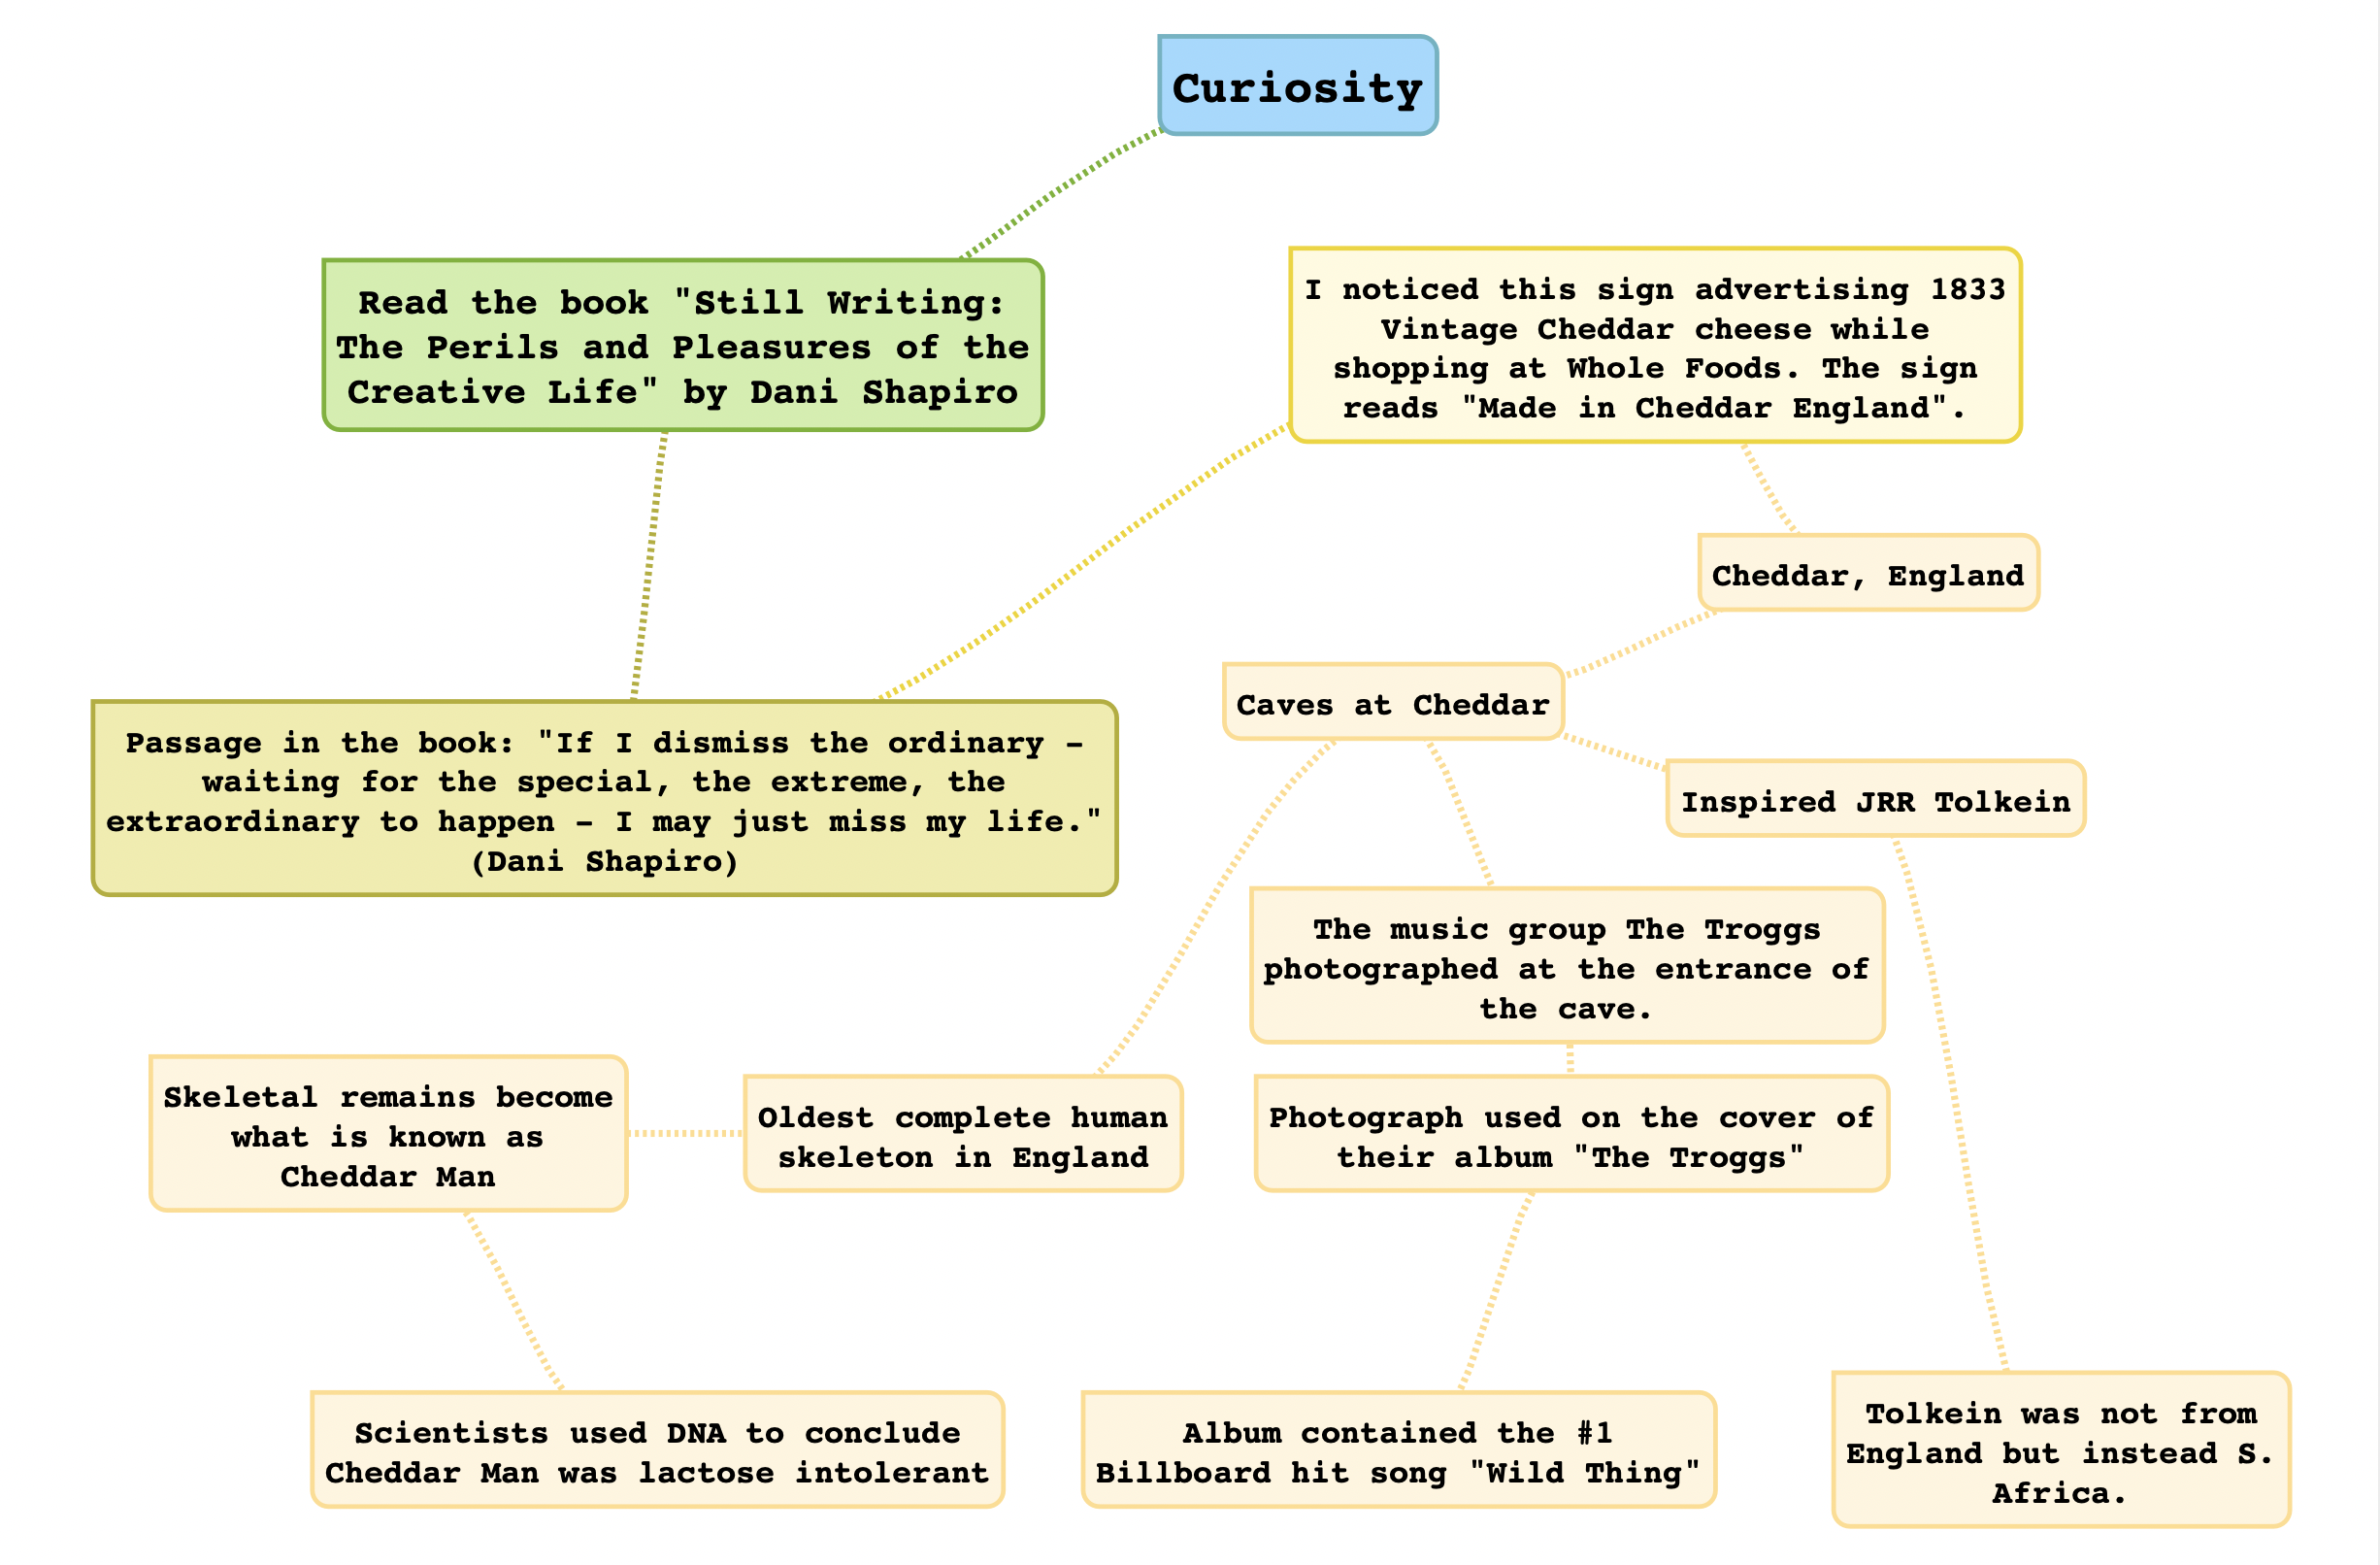 A mindmap I was playing with as I wrote this.